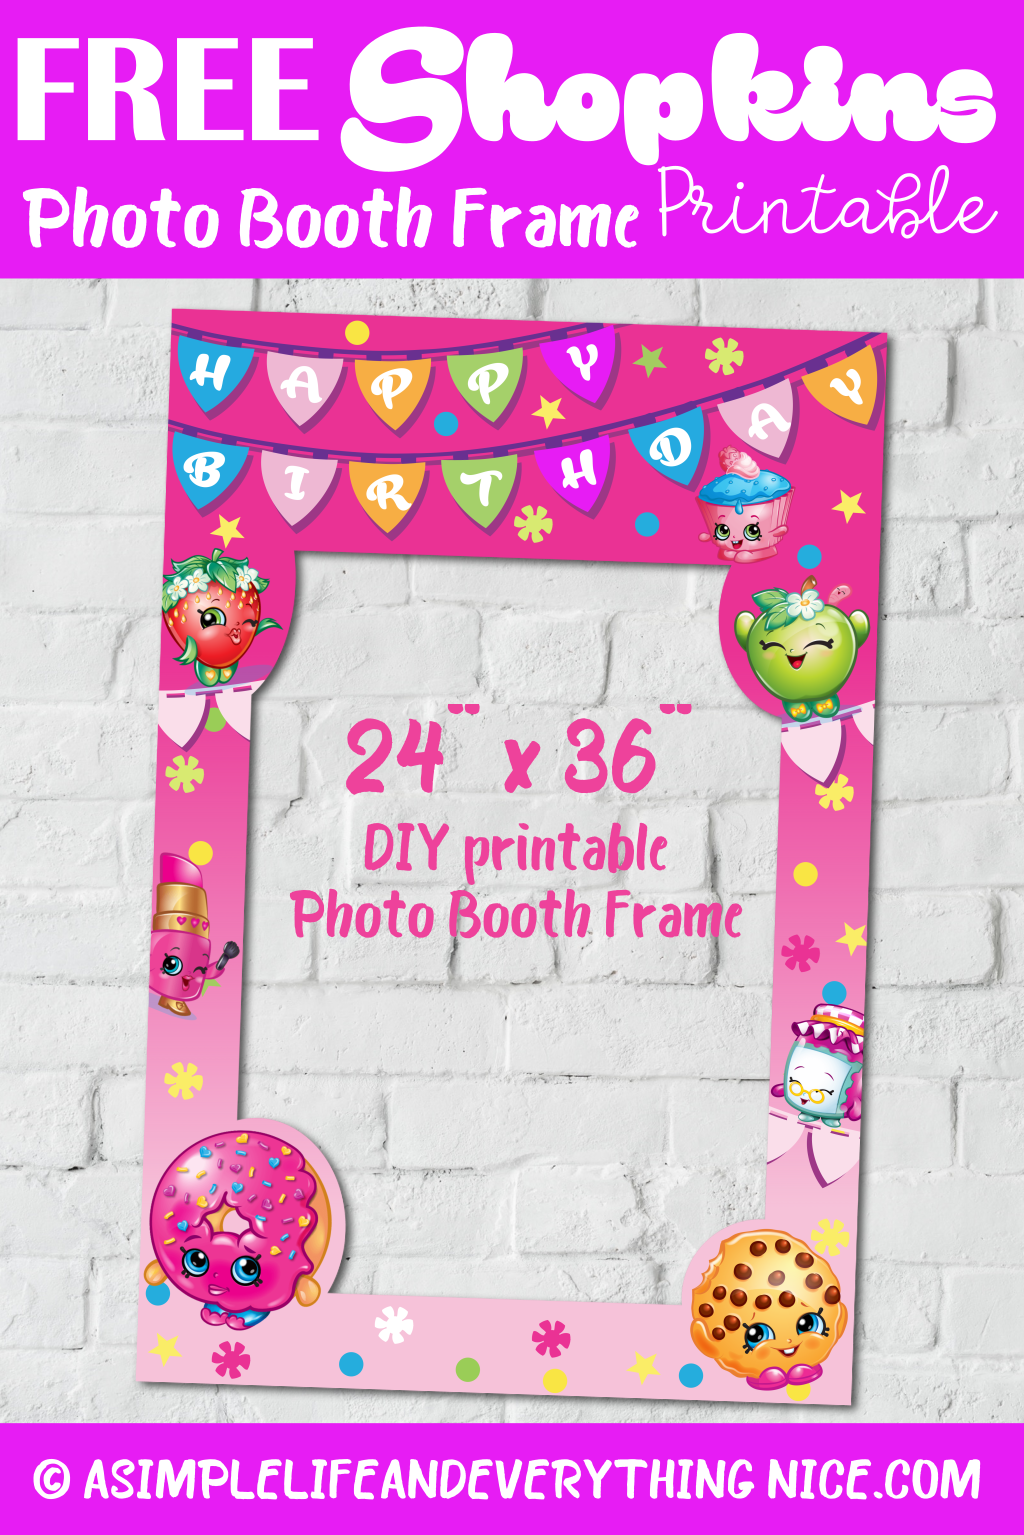 Free Shopkins Happy Birthday Photo Booth Frame Printable A Simple Life And Everything Nice